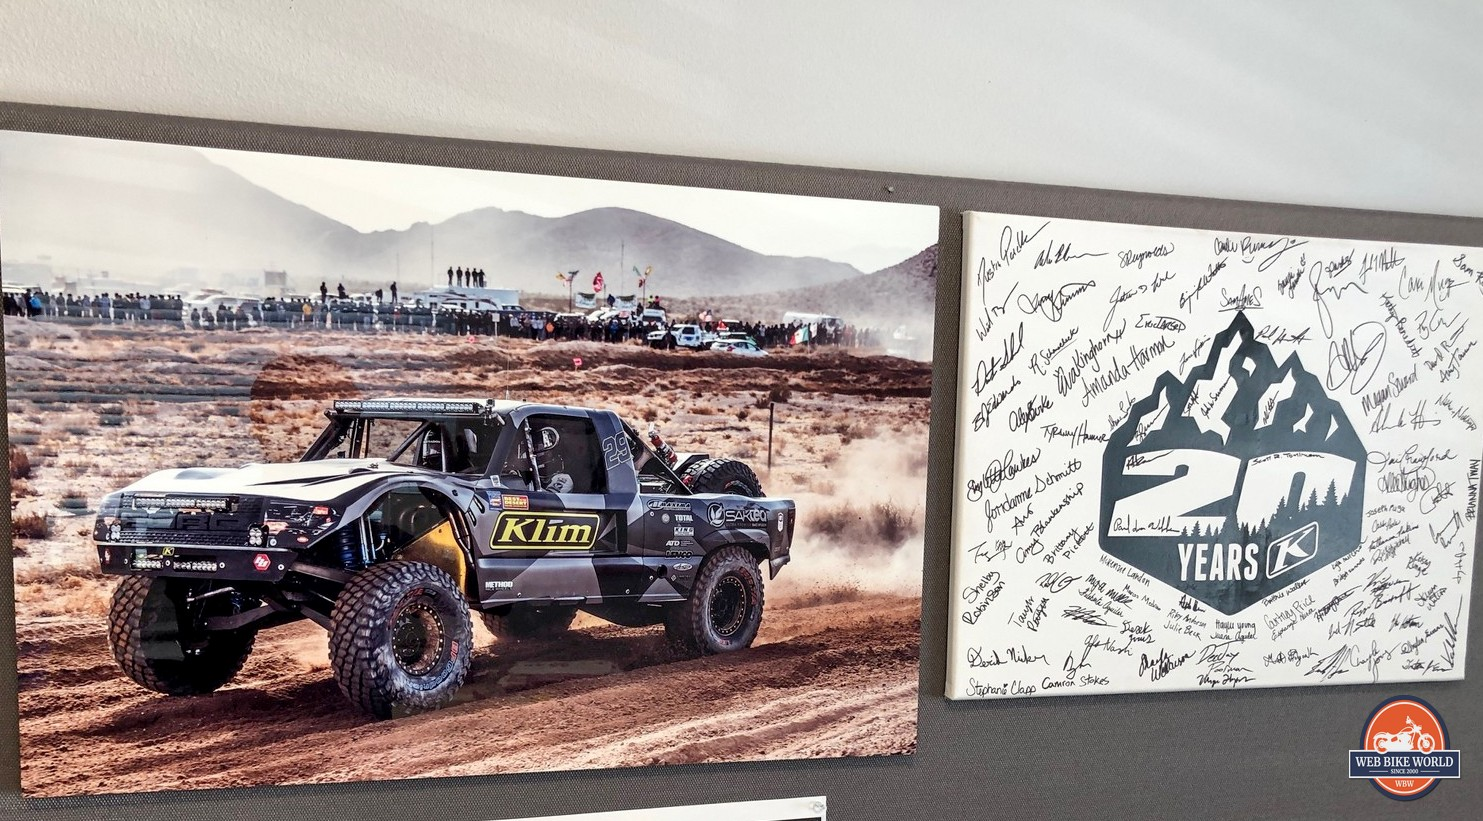 Photos at Klim HQ.